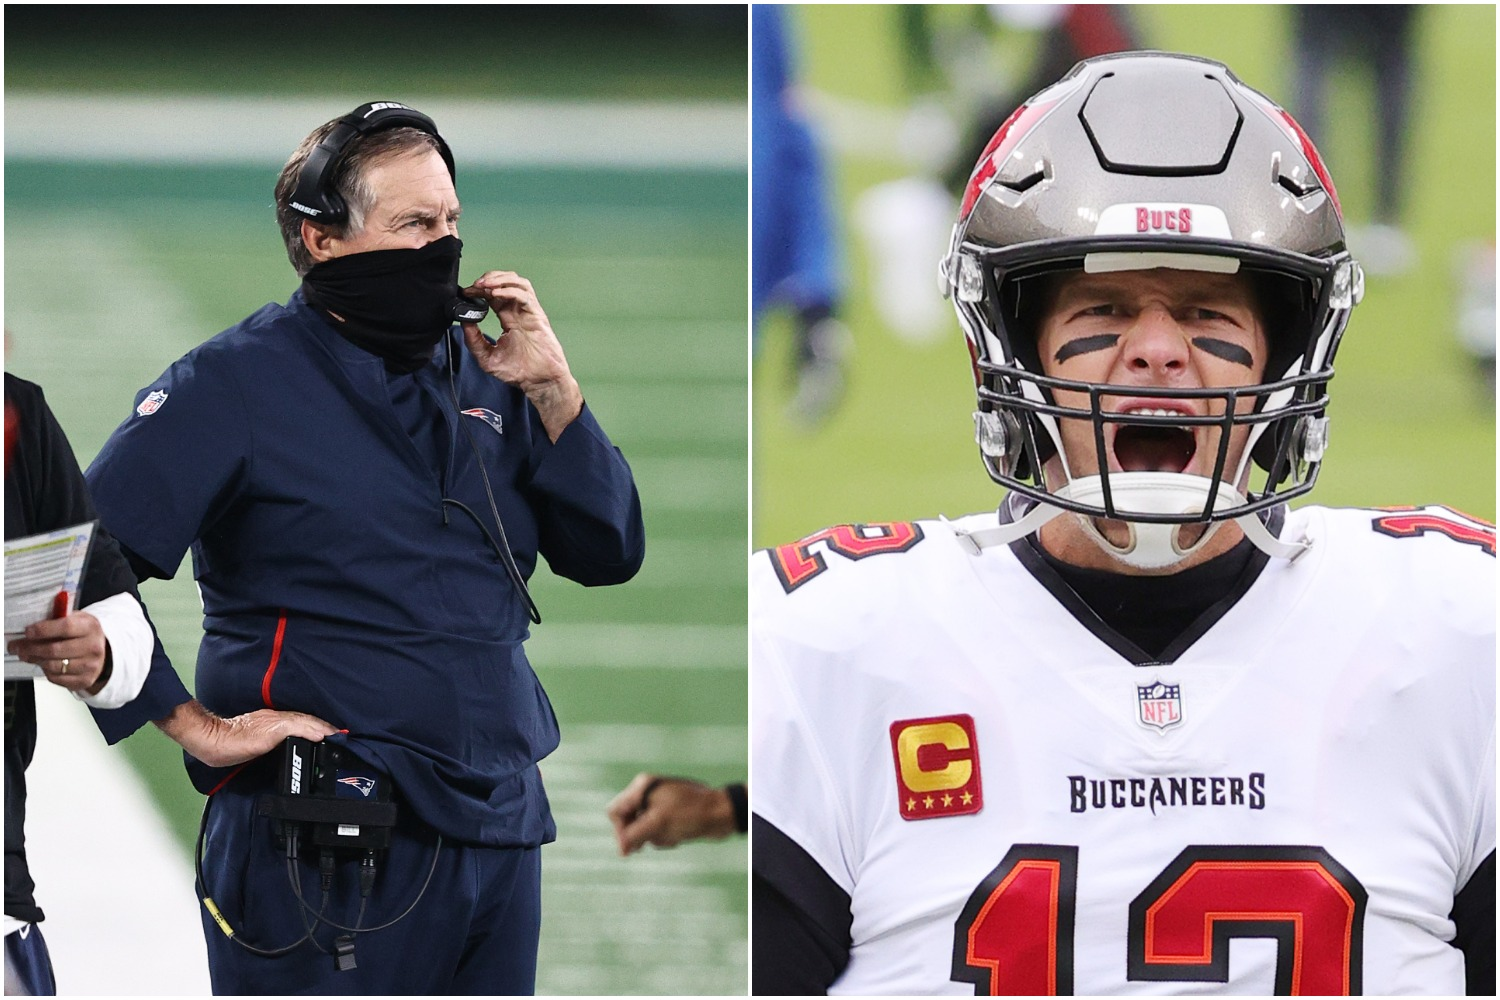 Tom Brady sent a strong message to Bill Belichick as the legendary quarterback prepares to win Super Bowl 55 with the Tampa Bay Buccaneers.